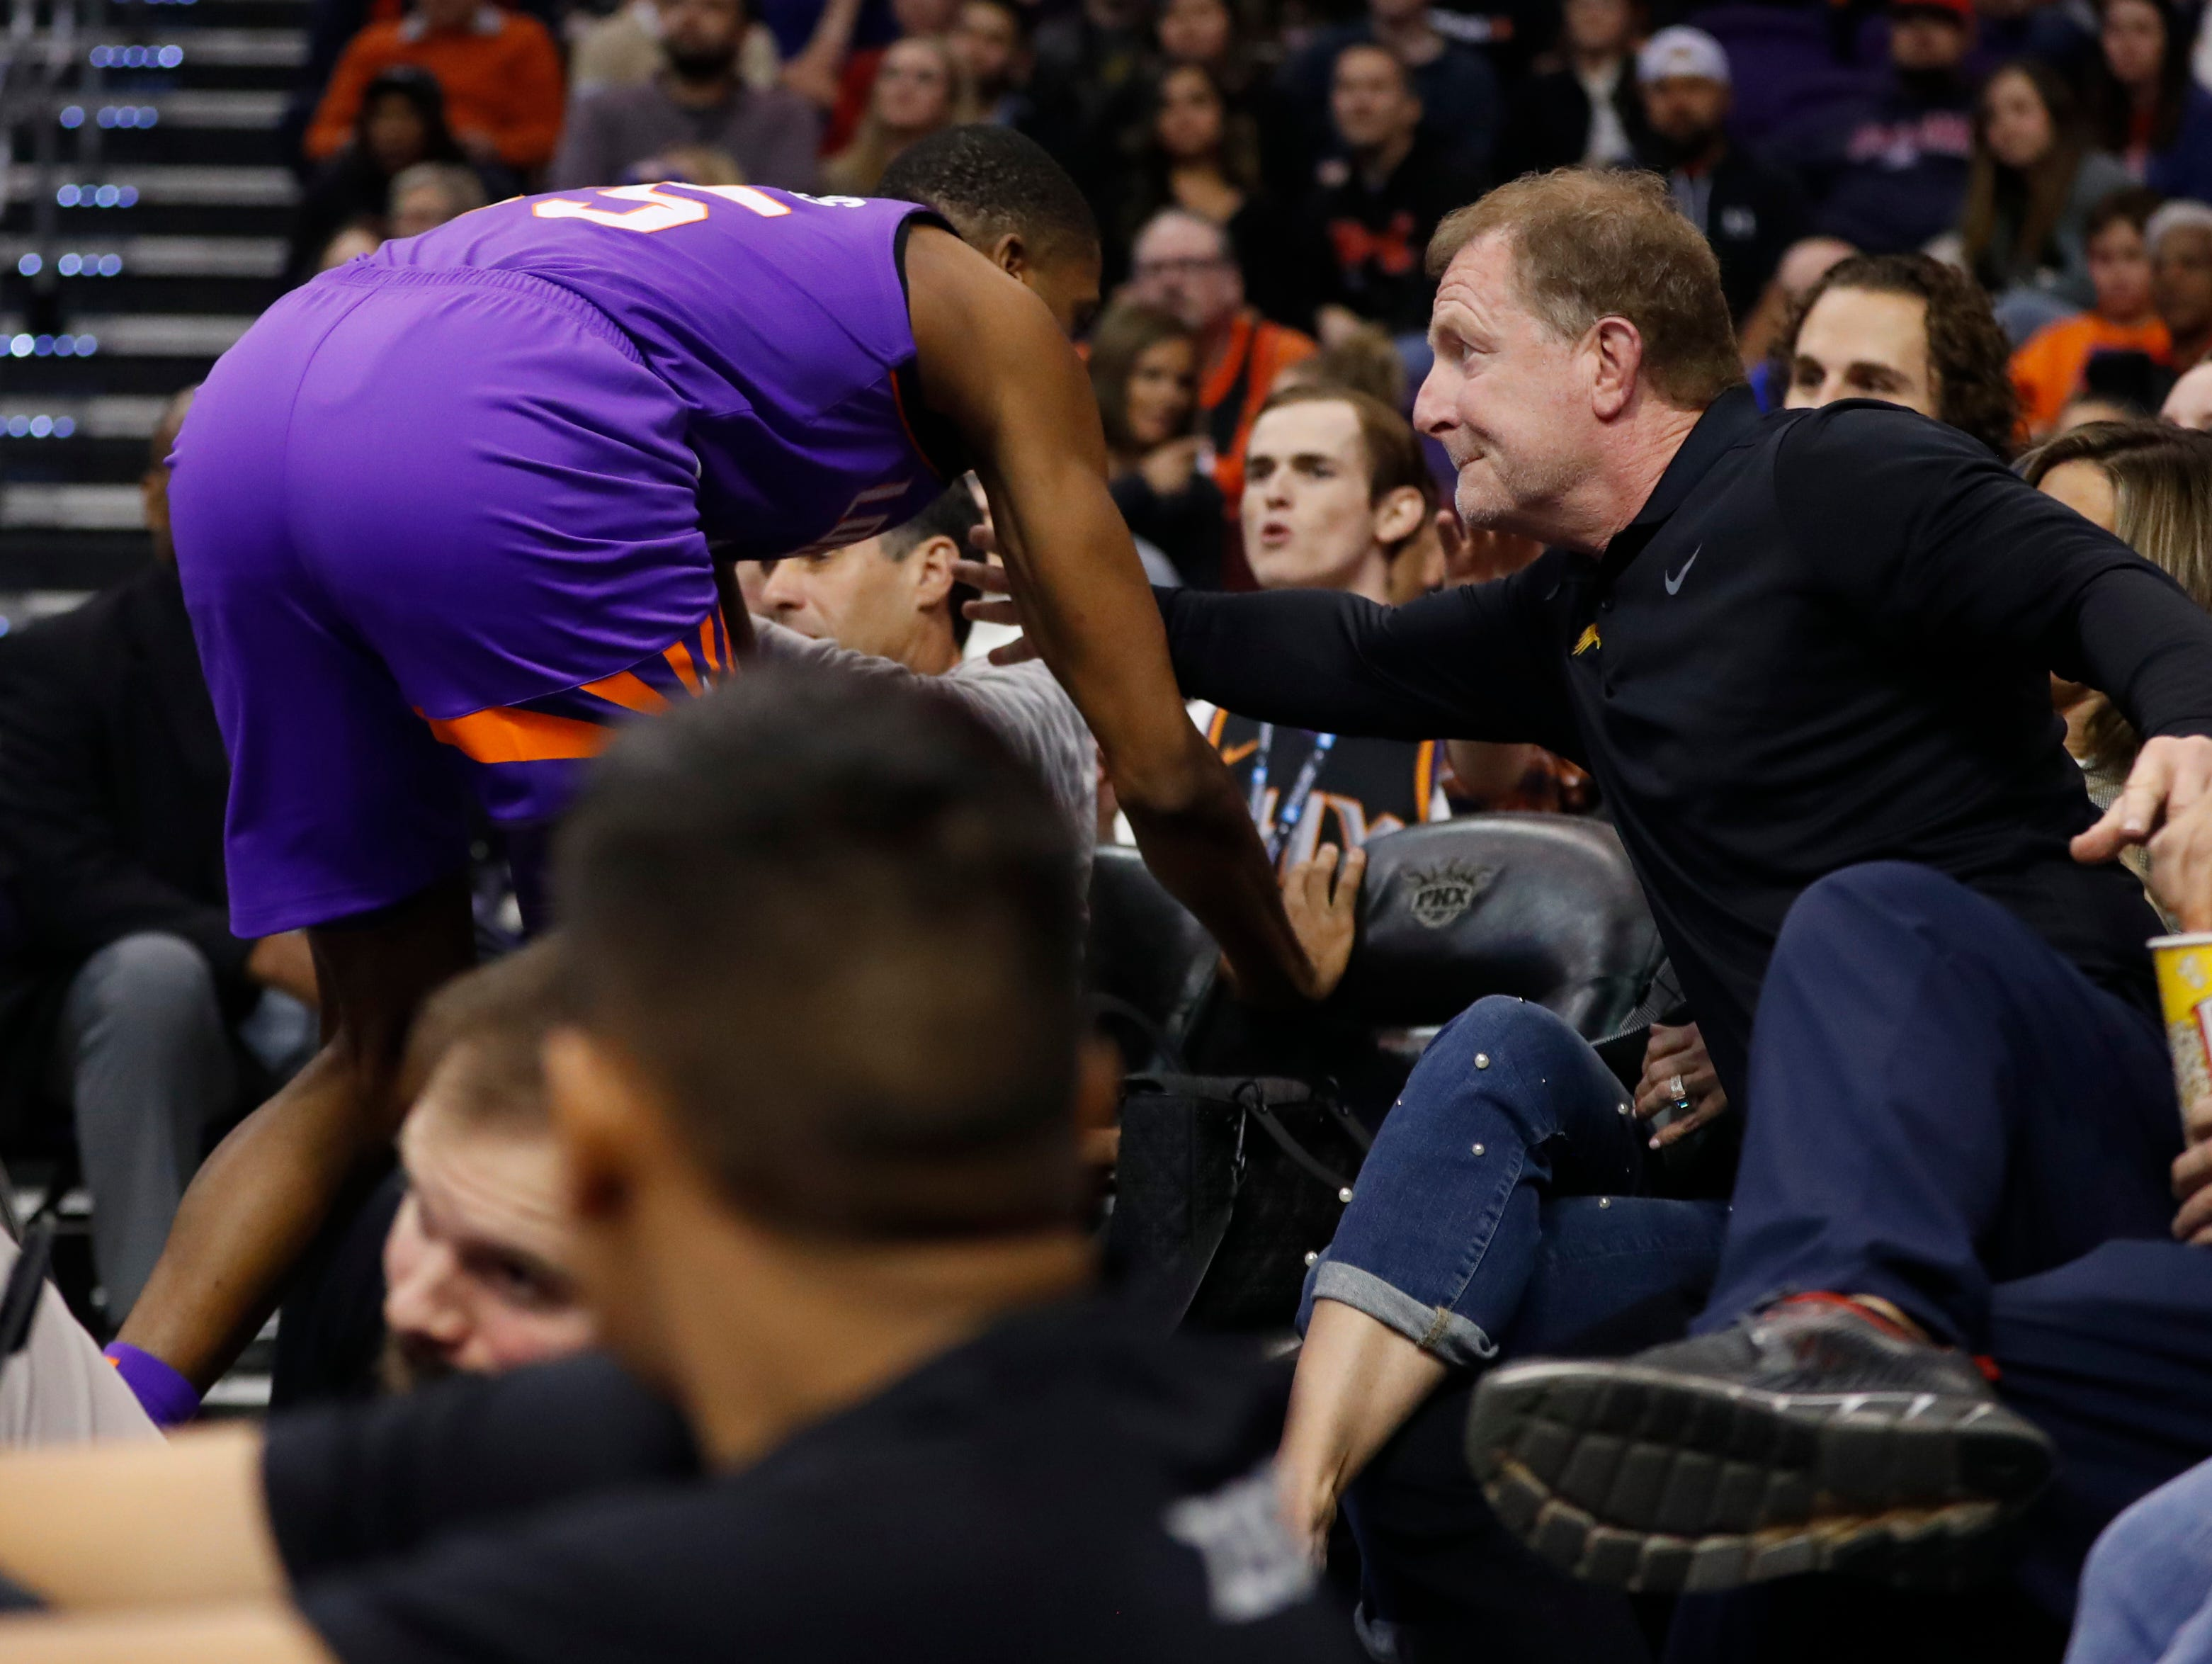 Suns' owner Robert Sarver puts an arm out to grab Suns' forward Mikal Bridges (15) as he dove into the fans for a loose ball against the Magic during the first half at Talking Stick Resort Arena in Phoenix, Ariz. on November 30, 2018.